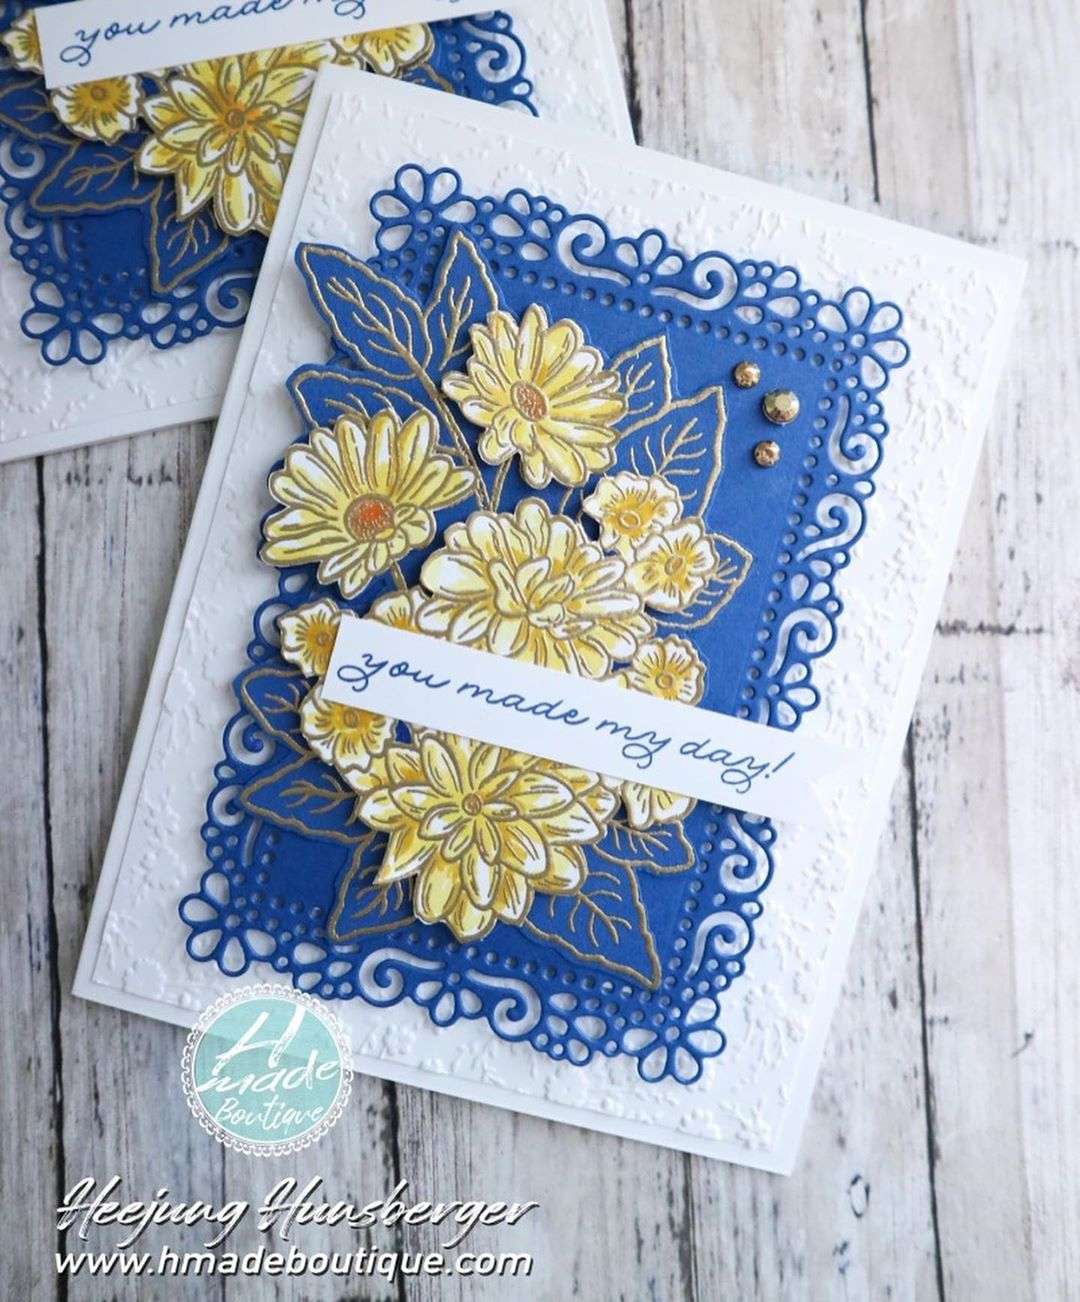 Pin by Leslie Stork on cards in 2020 Handmade birthday